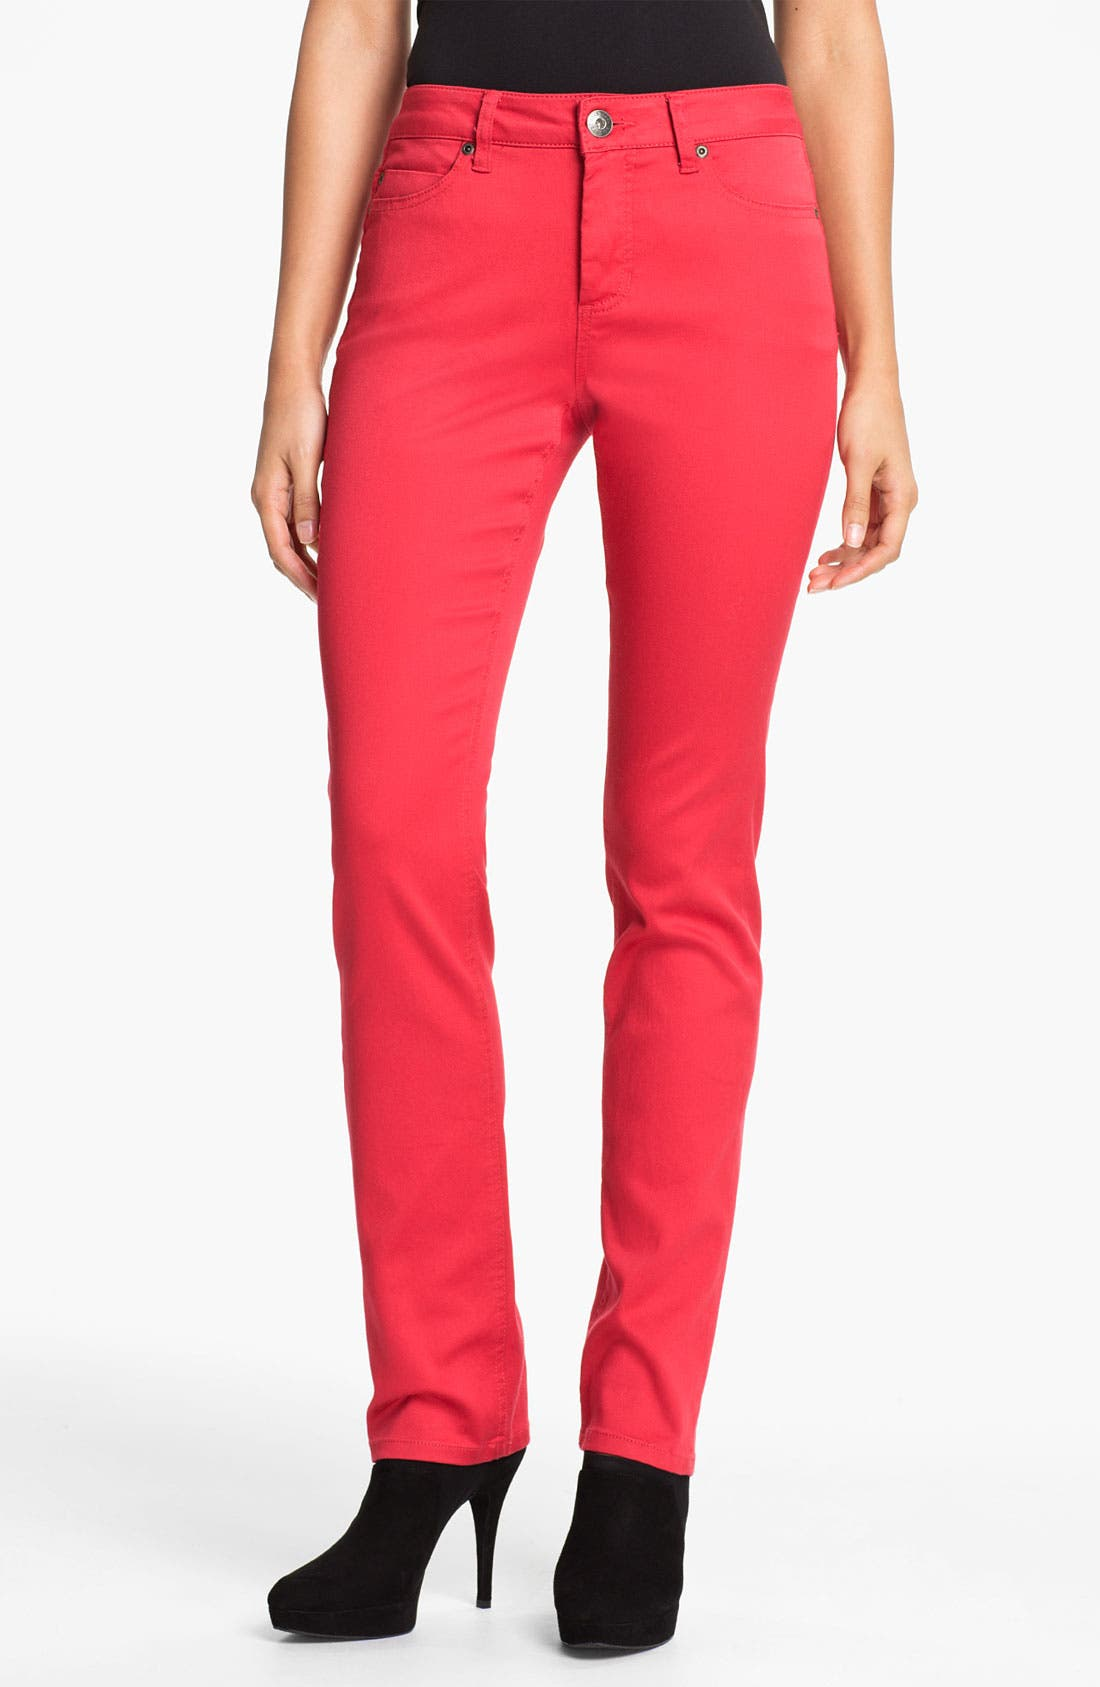 Main Image - Liverpool Jeans Company 'Sadie' Colored Straight Leg Stretch Jeans